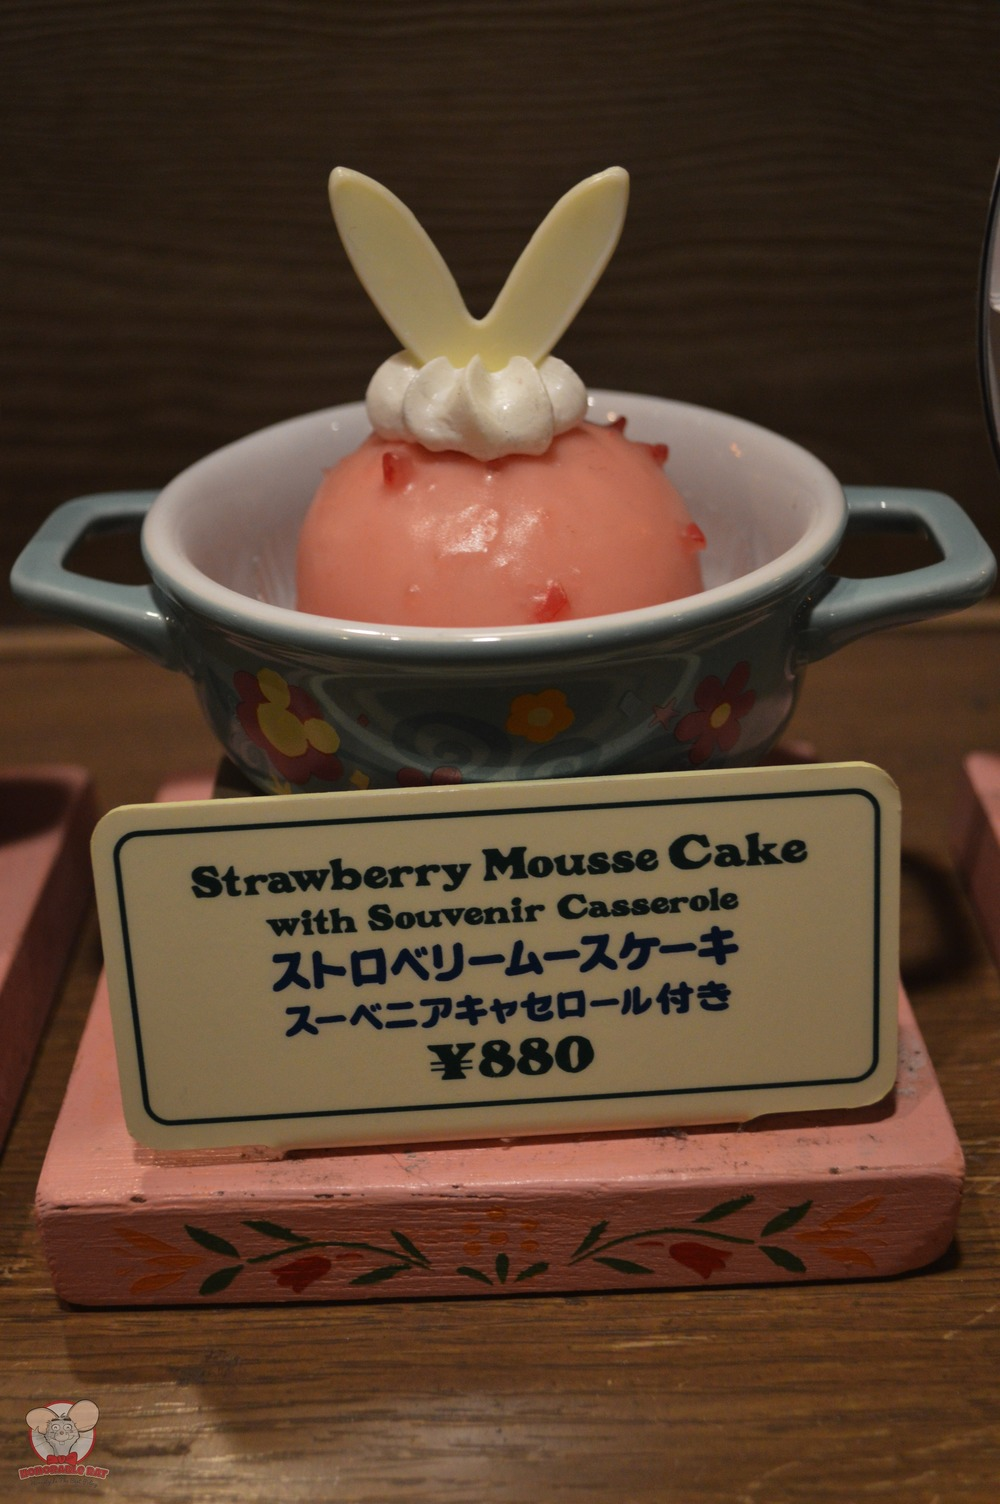 Strawberry Mousse Cake with Souvenir Casserole Menu